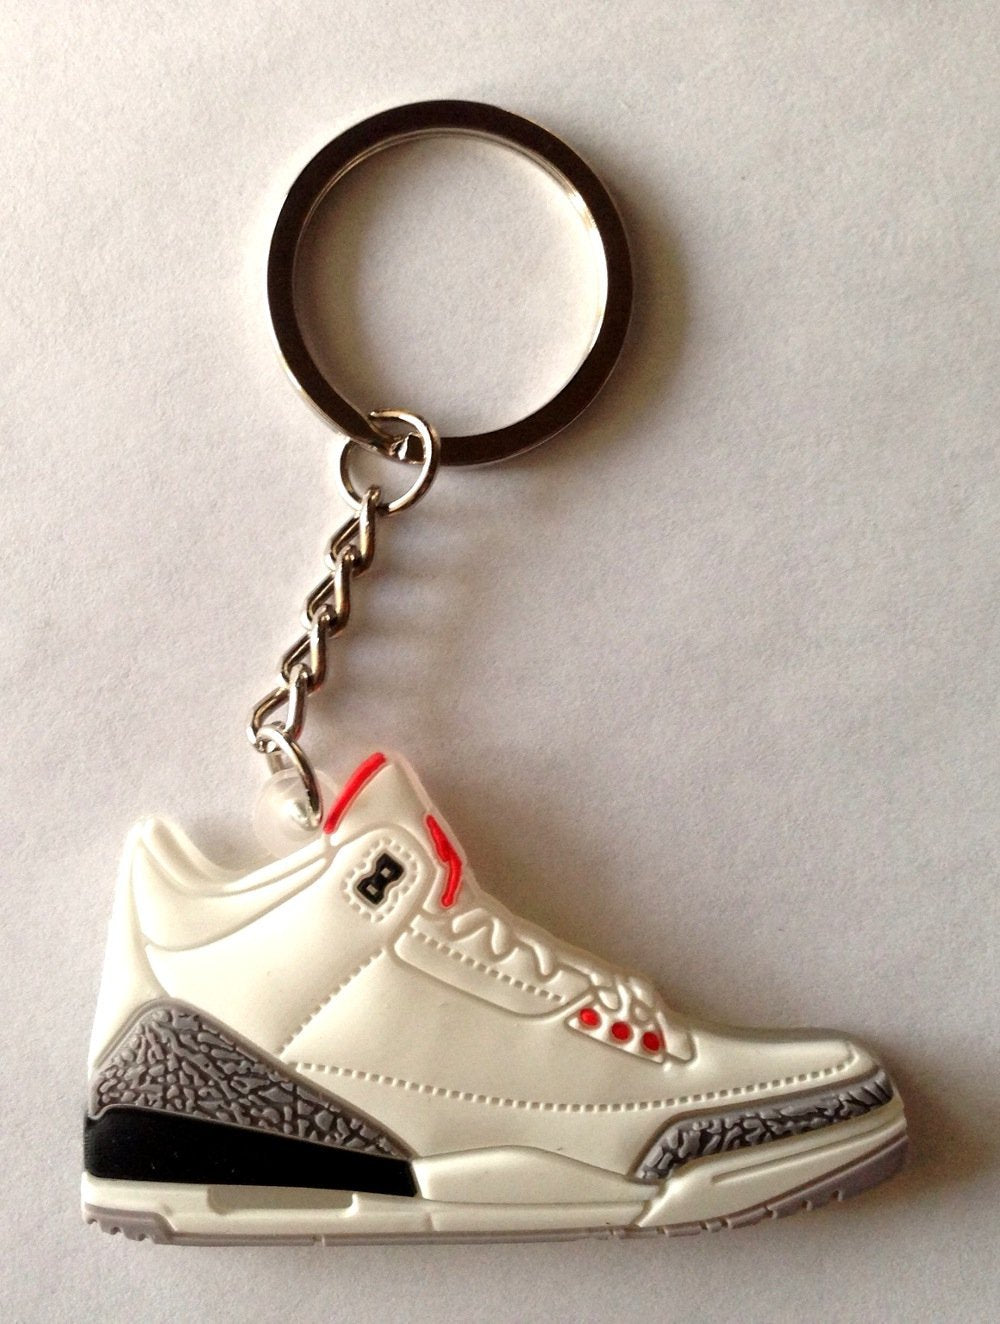 Air Jordan 3/III Cement 88 OG White Sneakers Shoes 2D Keychain Keyring